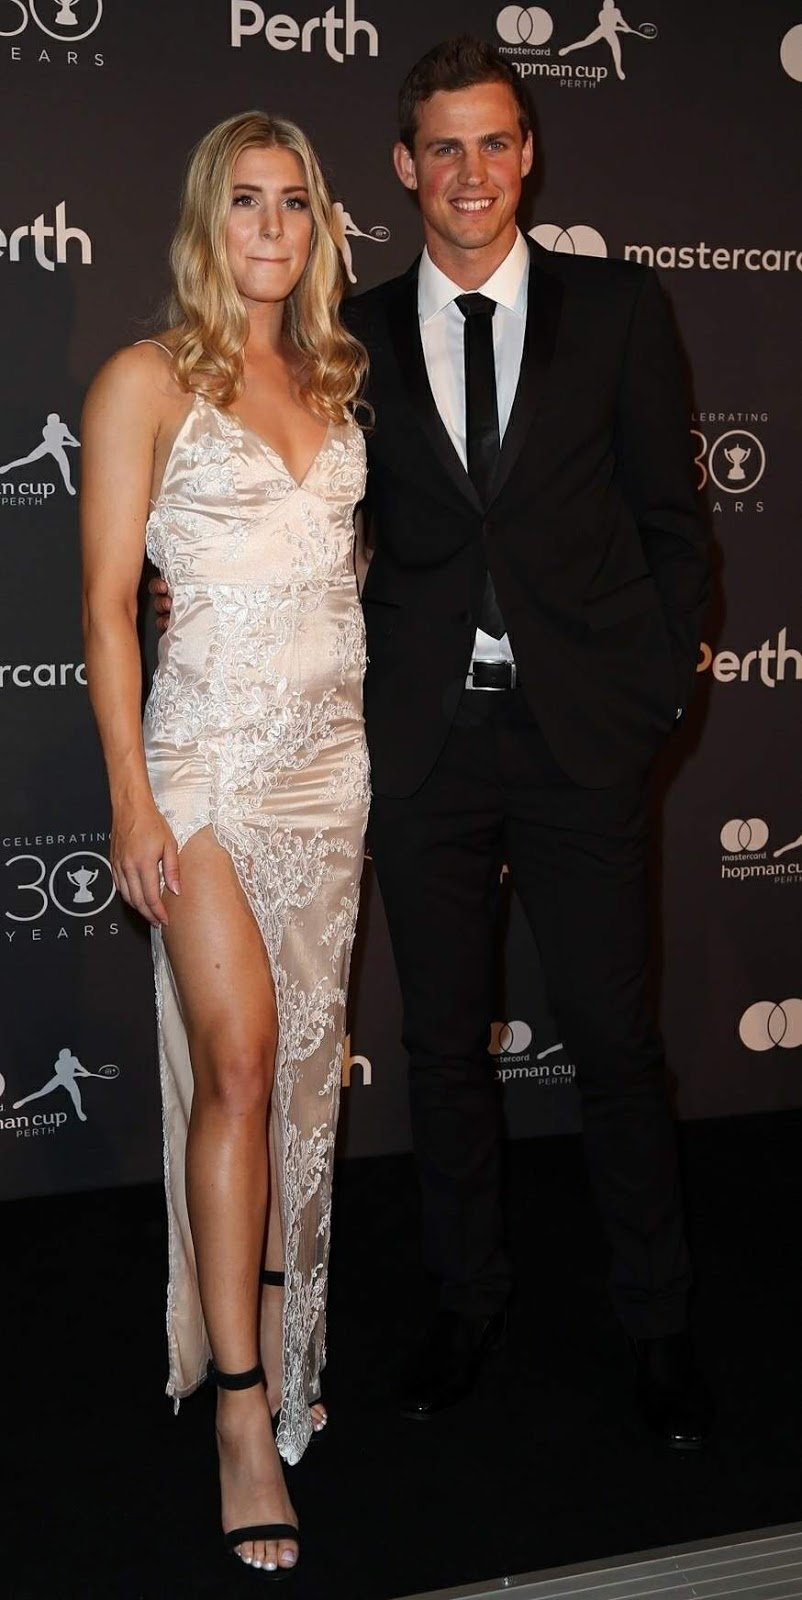 Eugenie Bouchard and Vasek Pospisil at Hopman Cup New Years Eve Players Ball